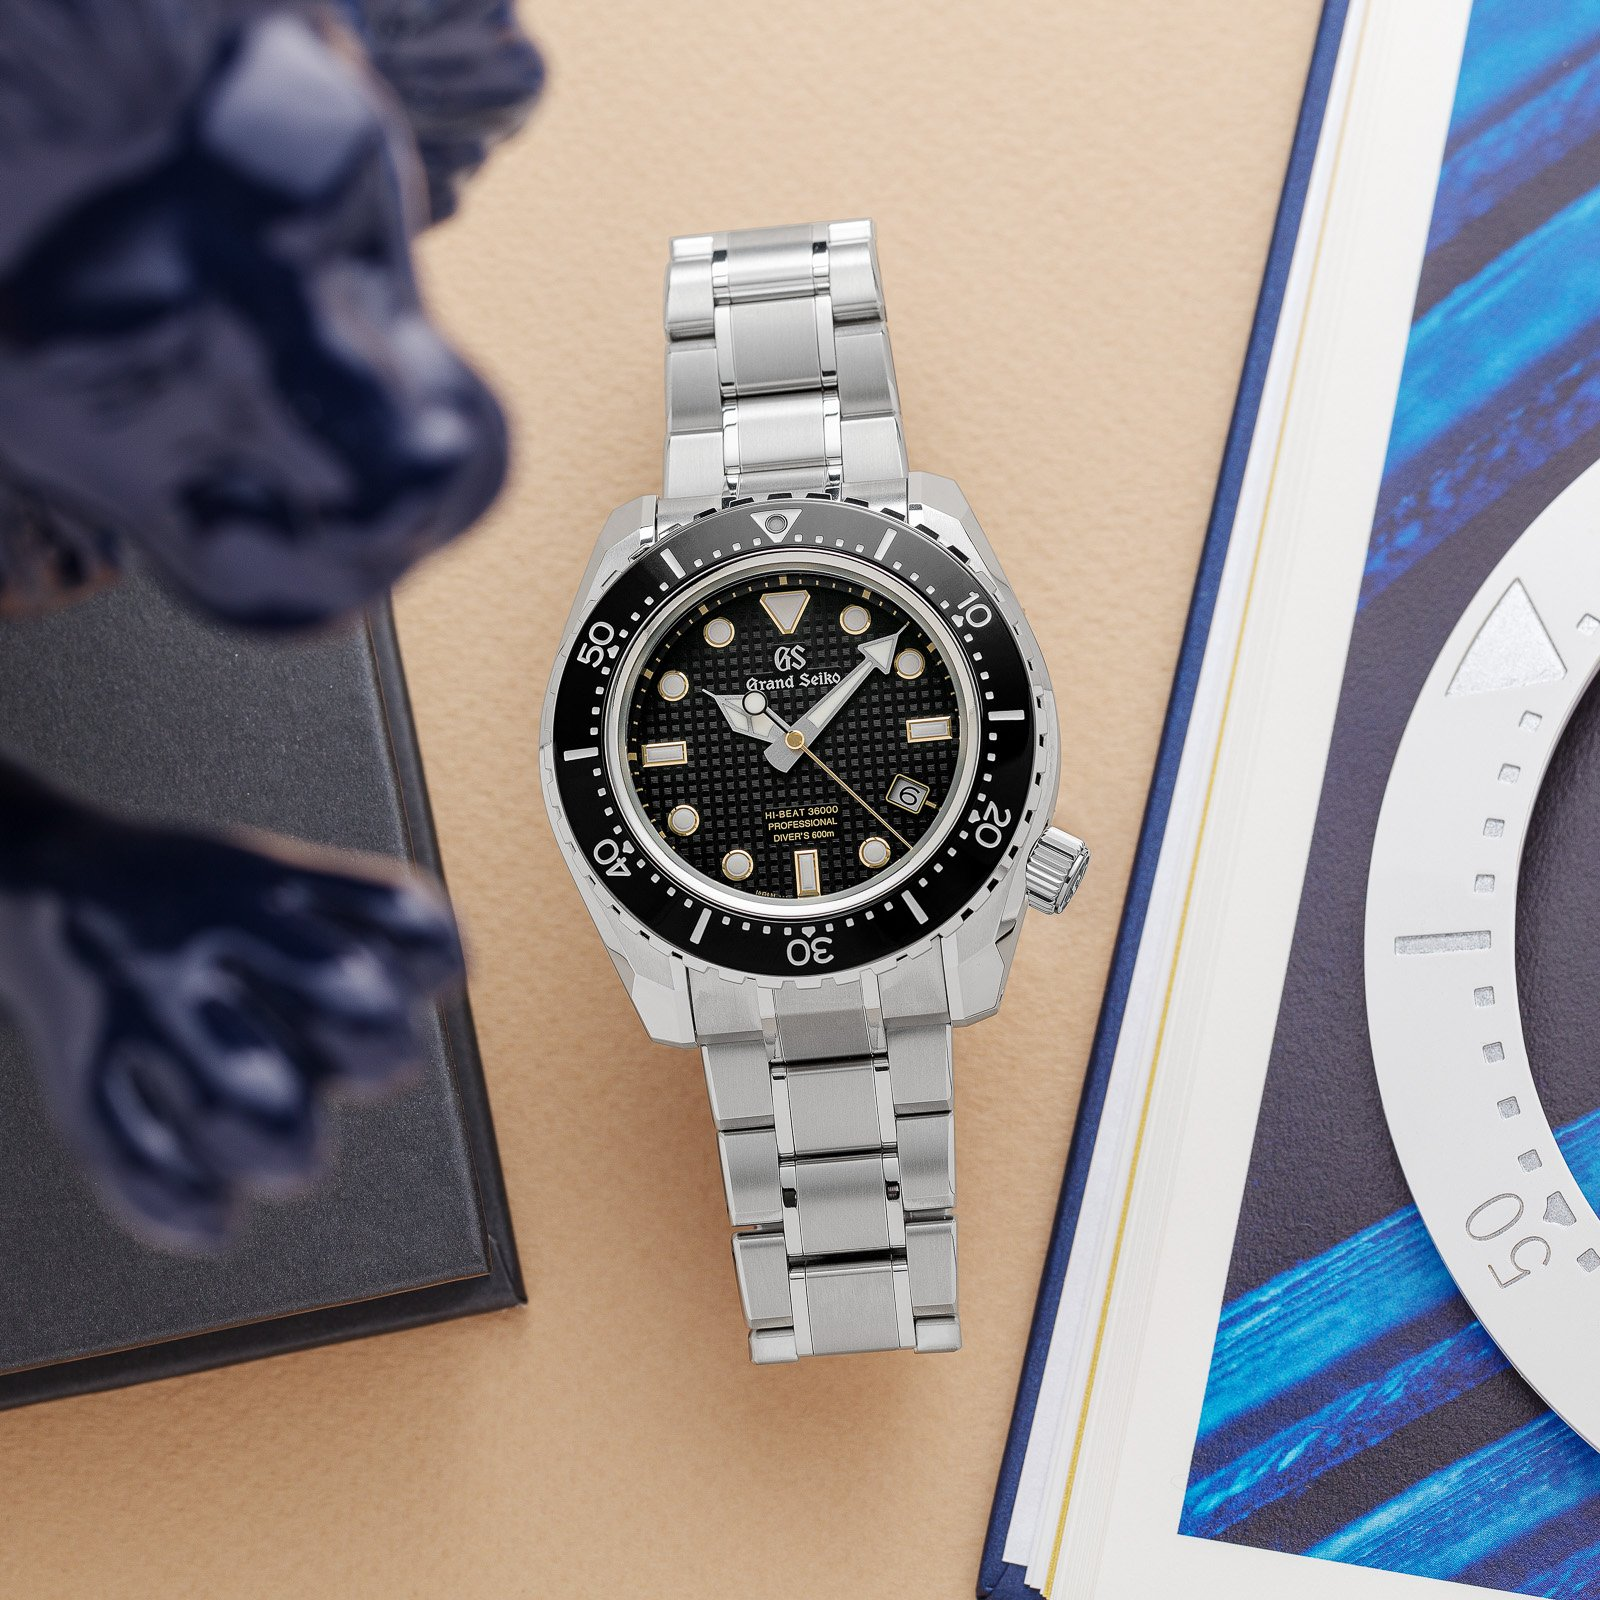 Grand Seiko SBGH255 - a black-dialed diver's wristwatch with a titanium case and bracelet atop a table.